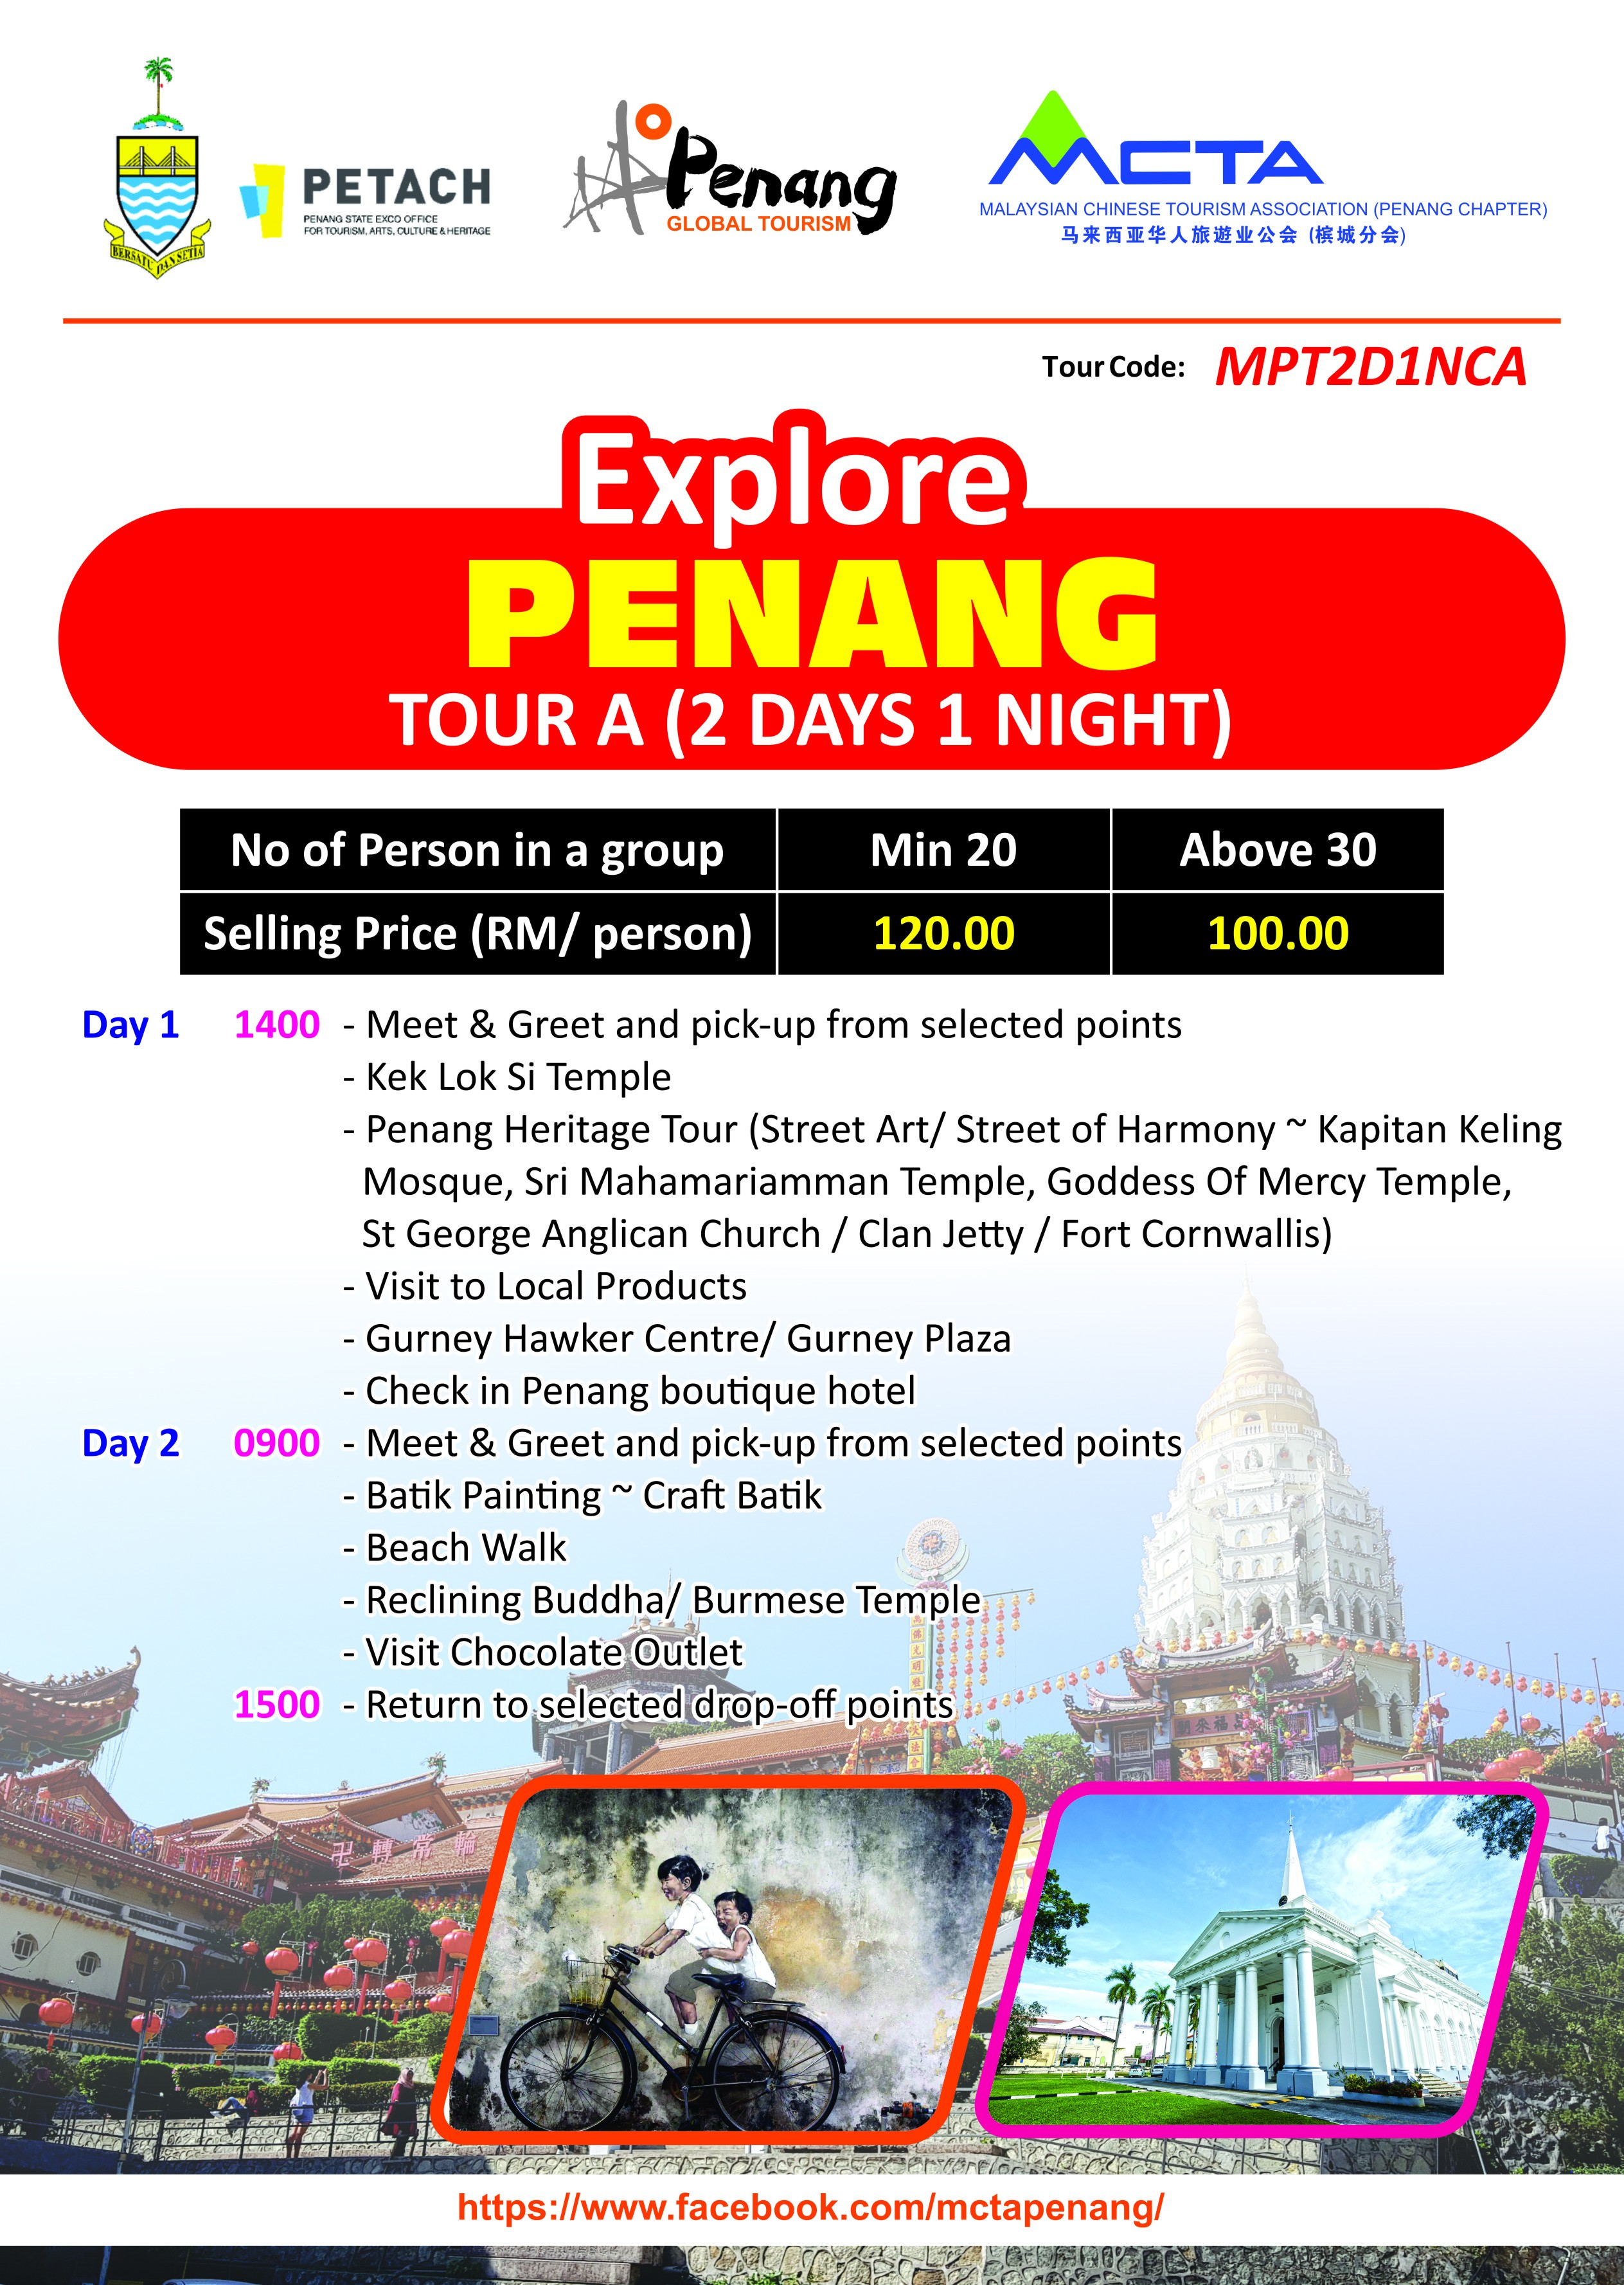 Explore Penang - Tour A (2 Days 1 Night)